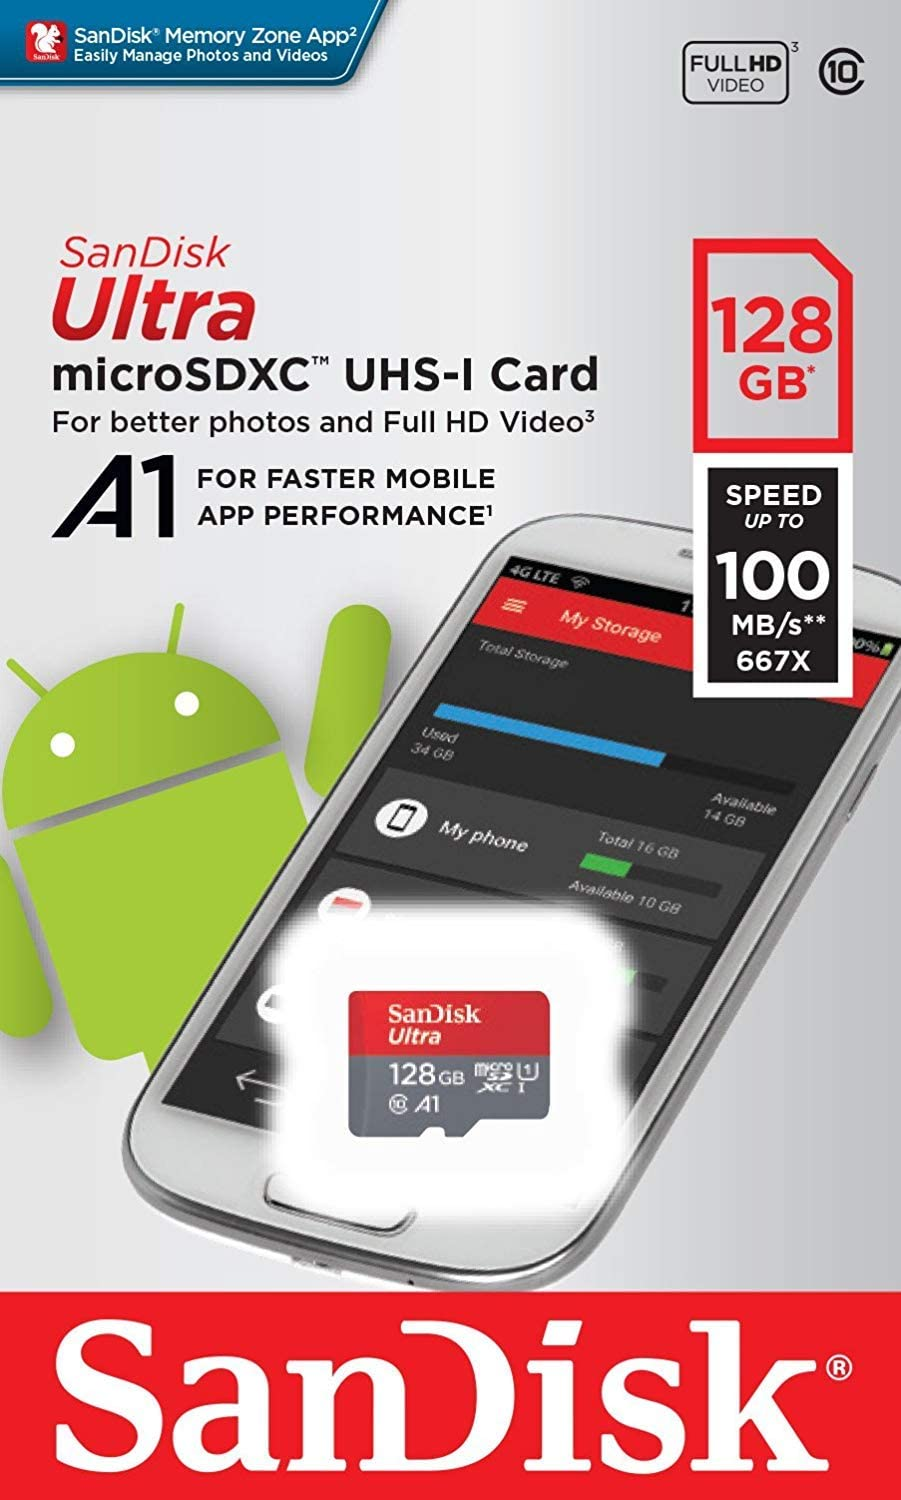 SanDisk Ultra 128GB MicroSDXC Verified for Honor 8 Lite by SanFlash 100MBs A1 U1 C10 Works with SanDisk